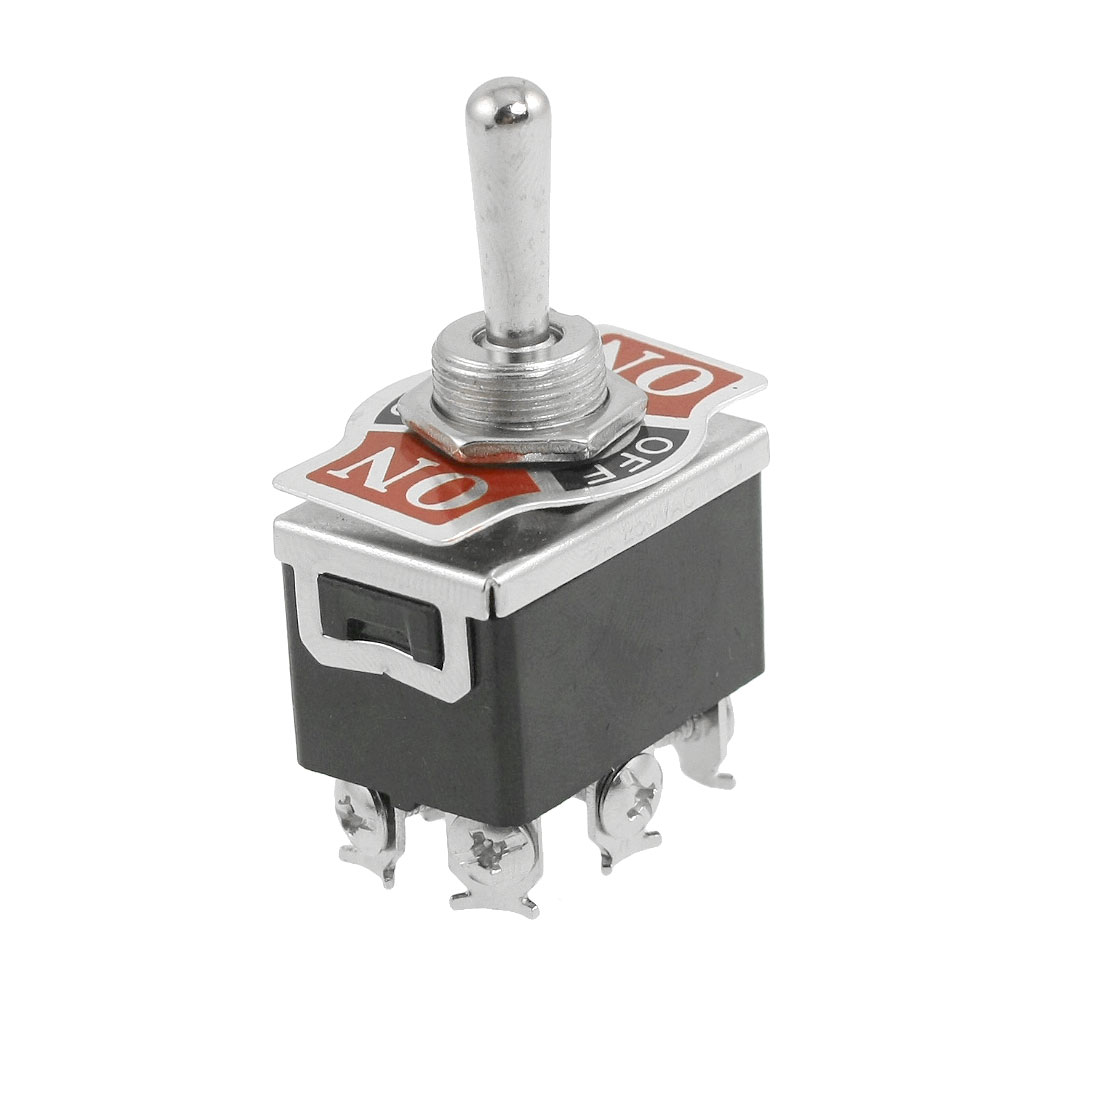 DPDT 6 Terminal ON/OFF/ON 3 Position Toggle Switch AC 250V/6A 125V/10A